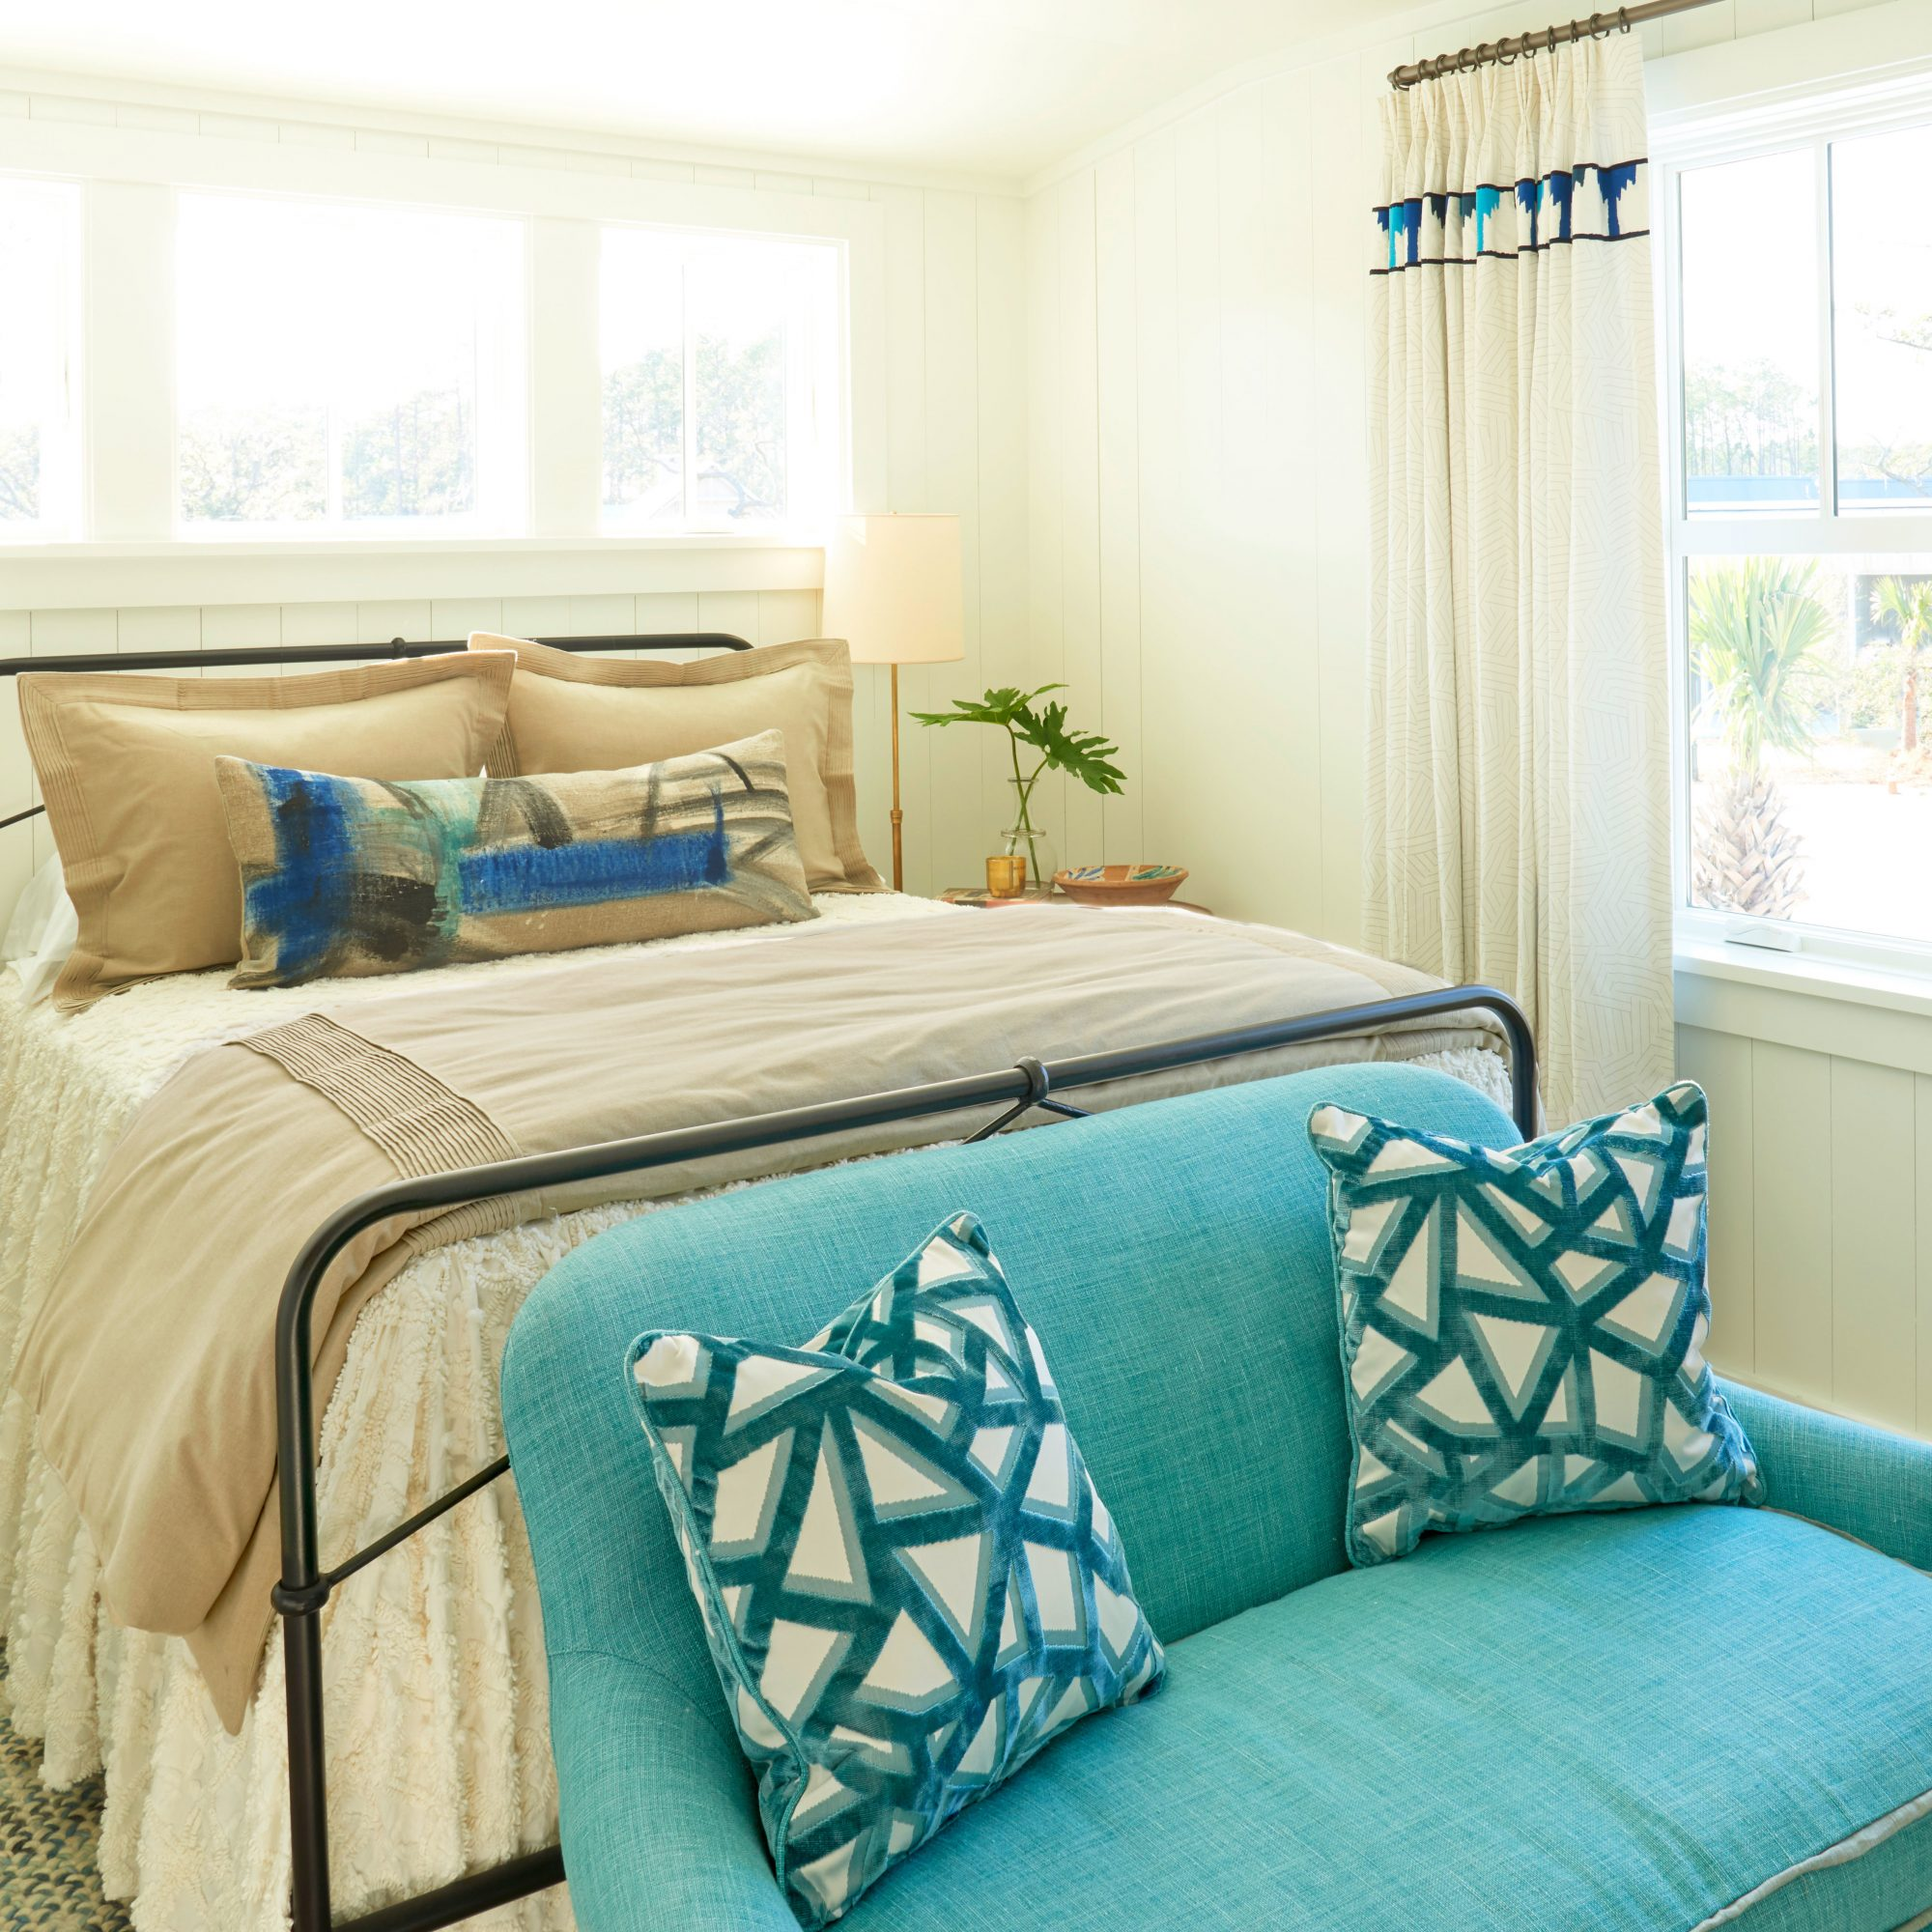 A cozy teal and white bedroom in a Lowcountry house.